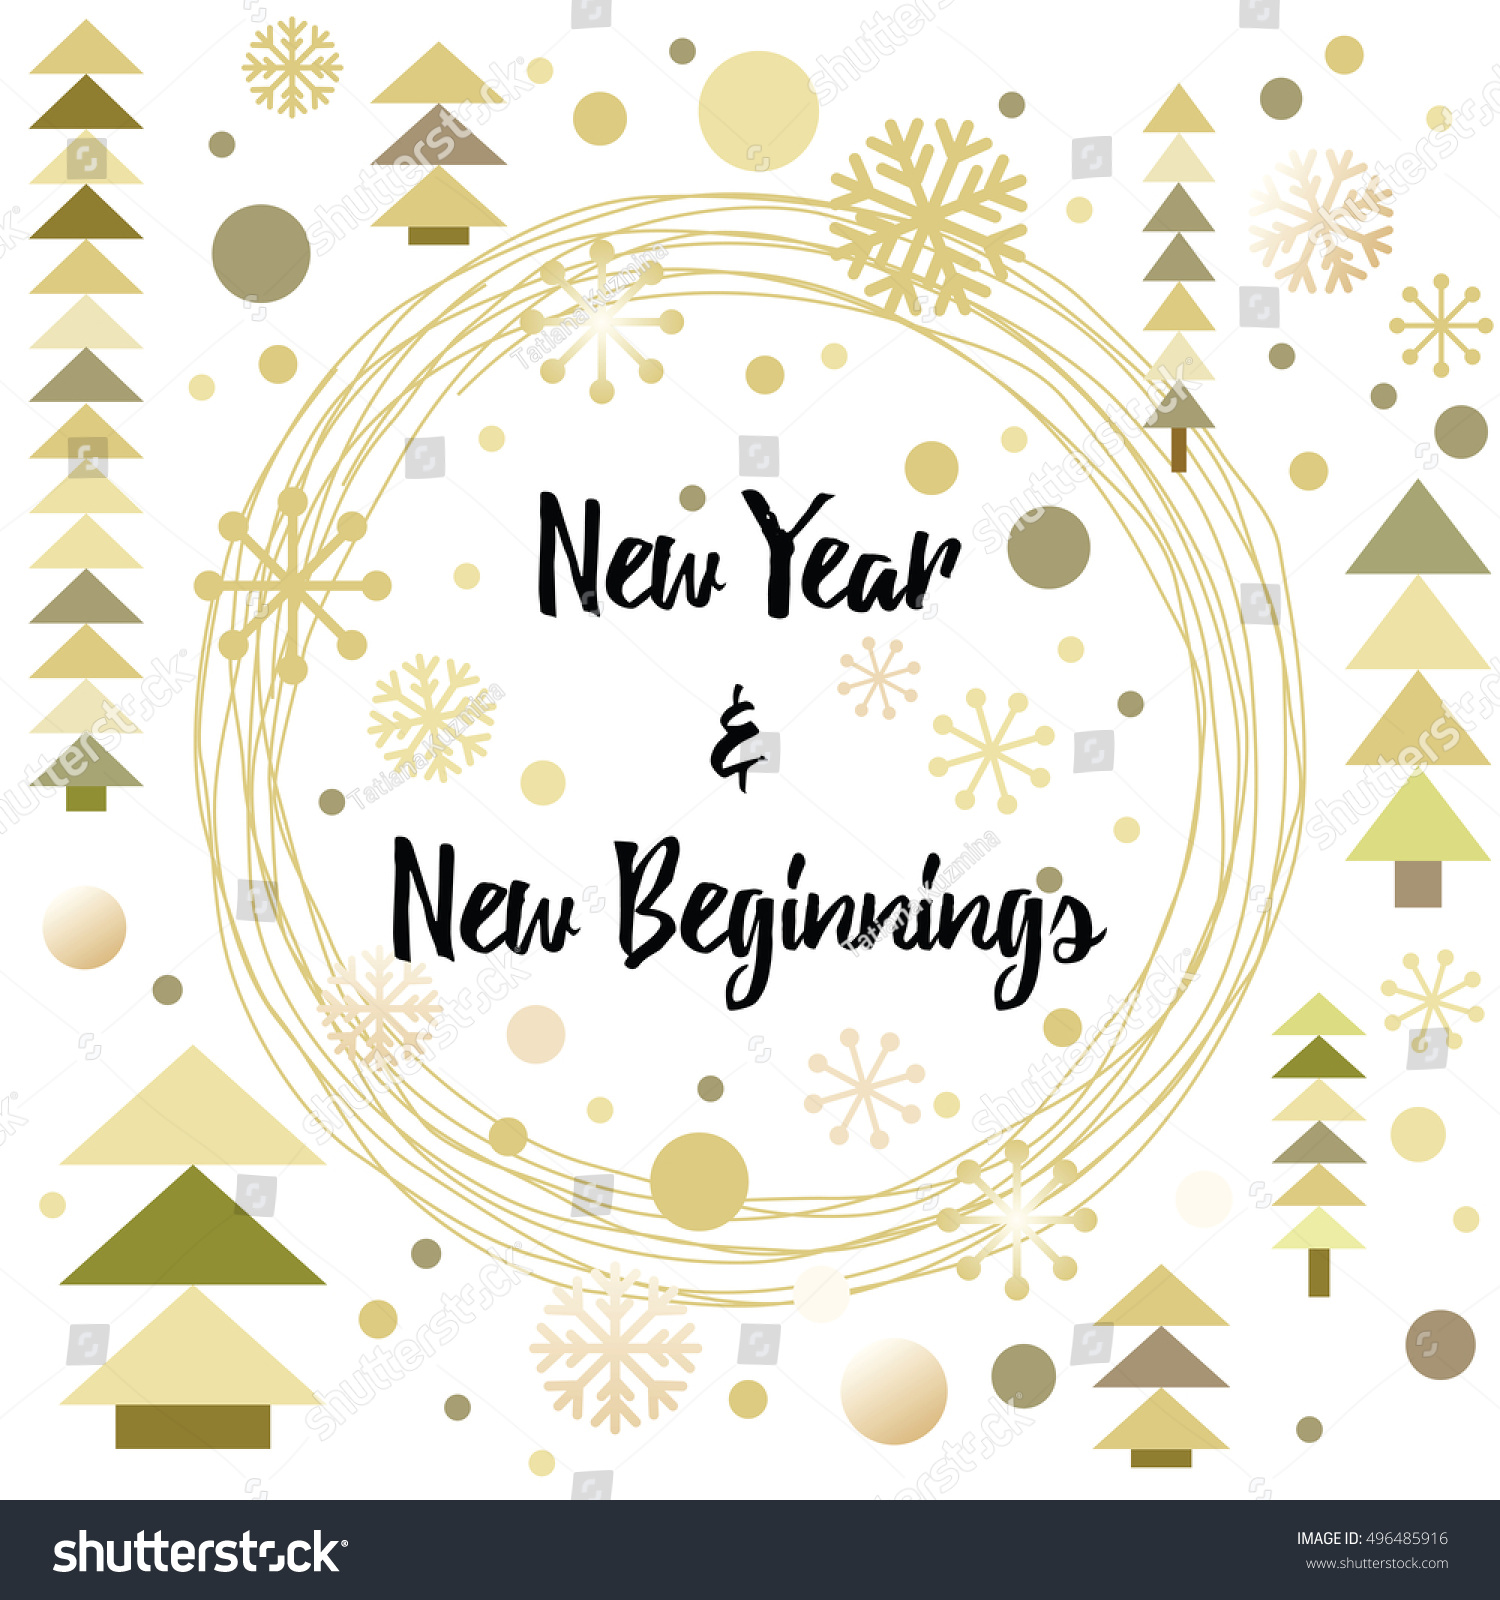 Happy New Year Greeting Card Design Stock Vector Royalty Free